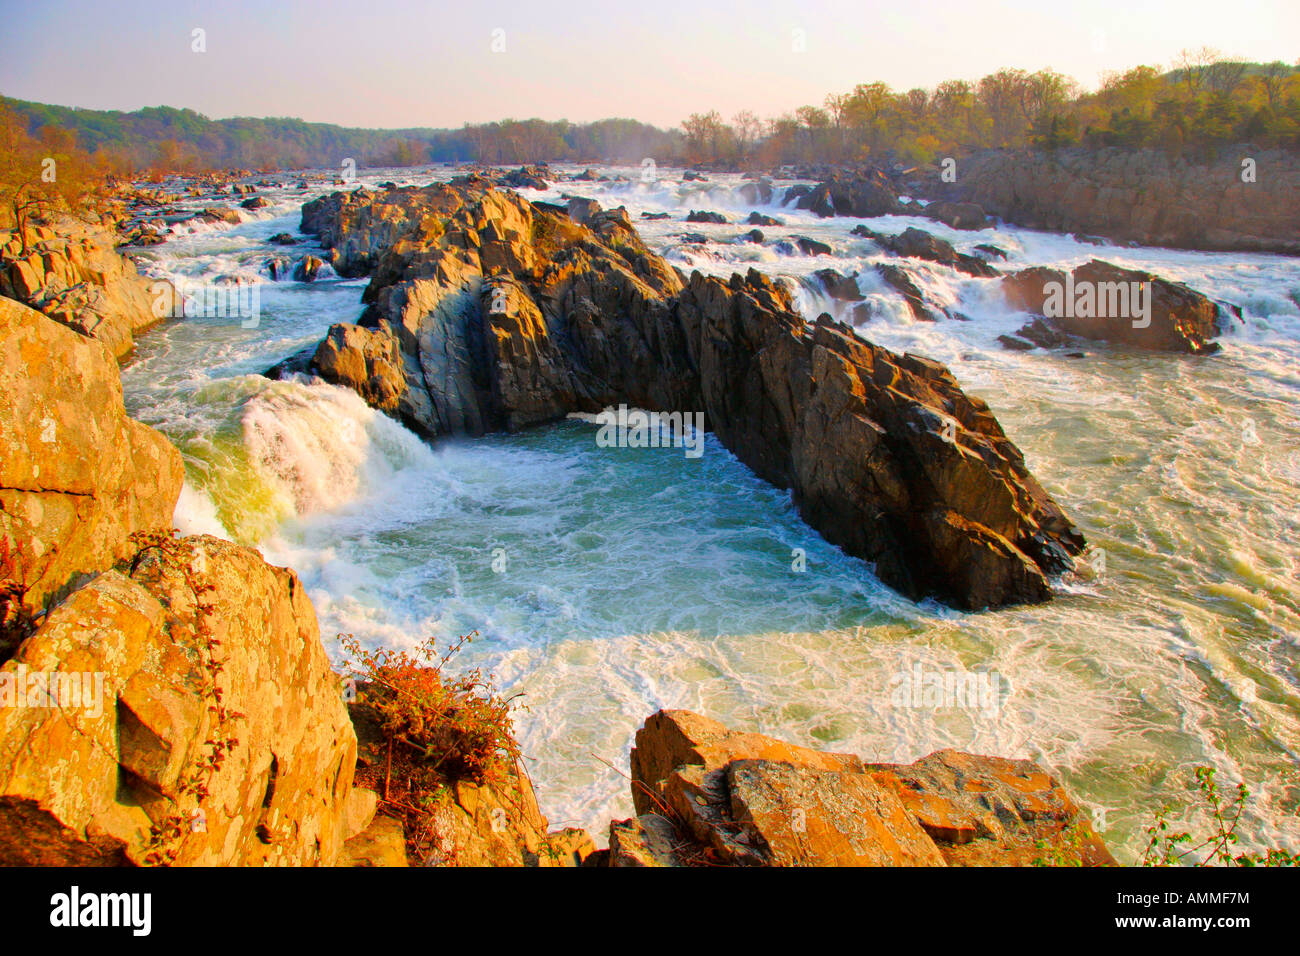 Sunrise in Mather Gorge, Great Falls Park, Fairfax County, Virginia, USA - Stock Image